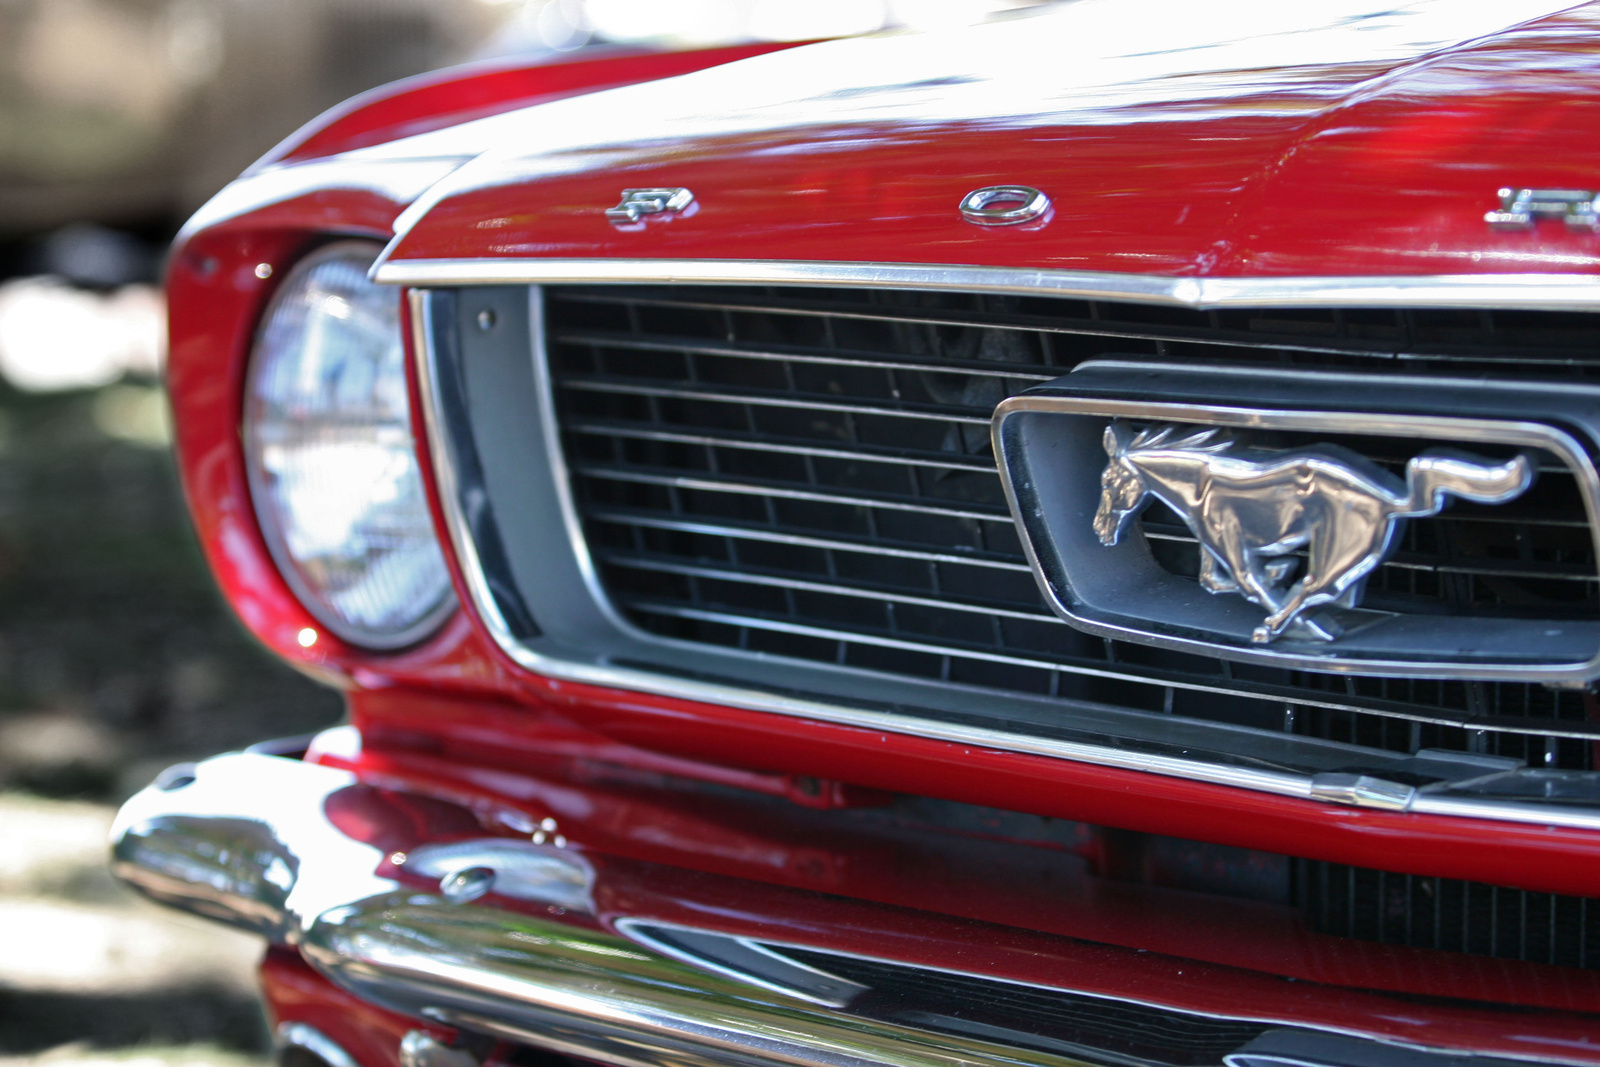 Mustang Quotes Ford Mustang Shelby Quotes  Draccs  Finden Sie Details Über